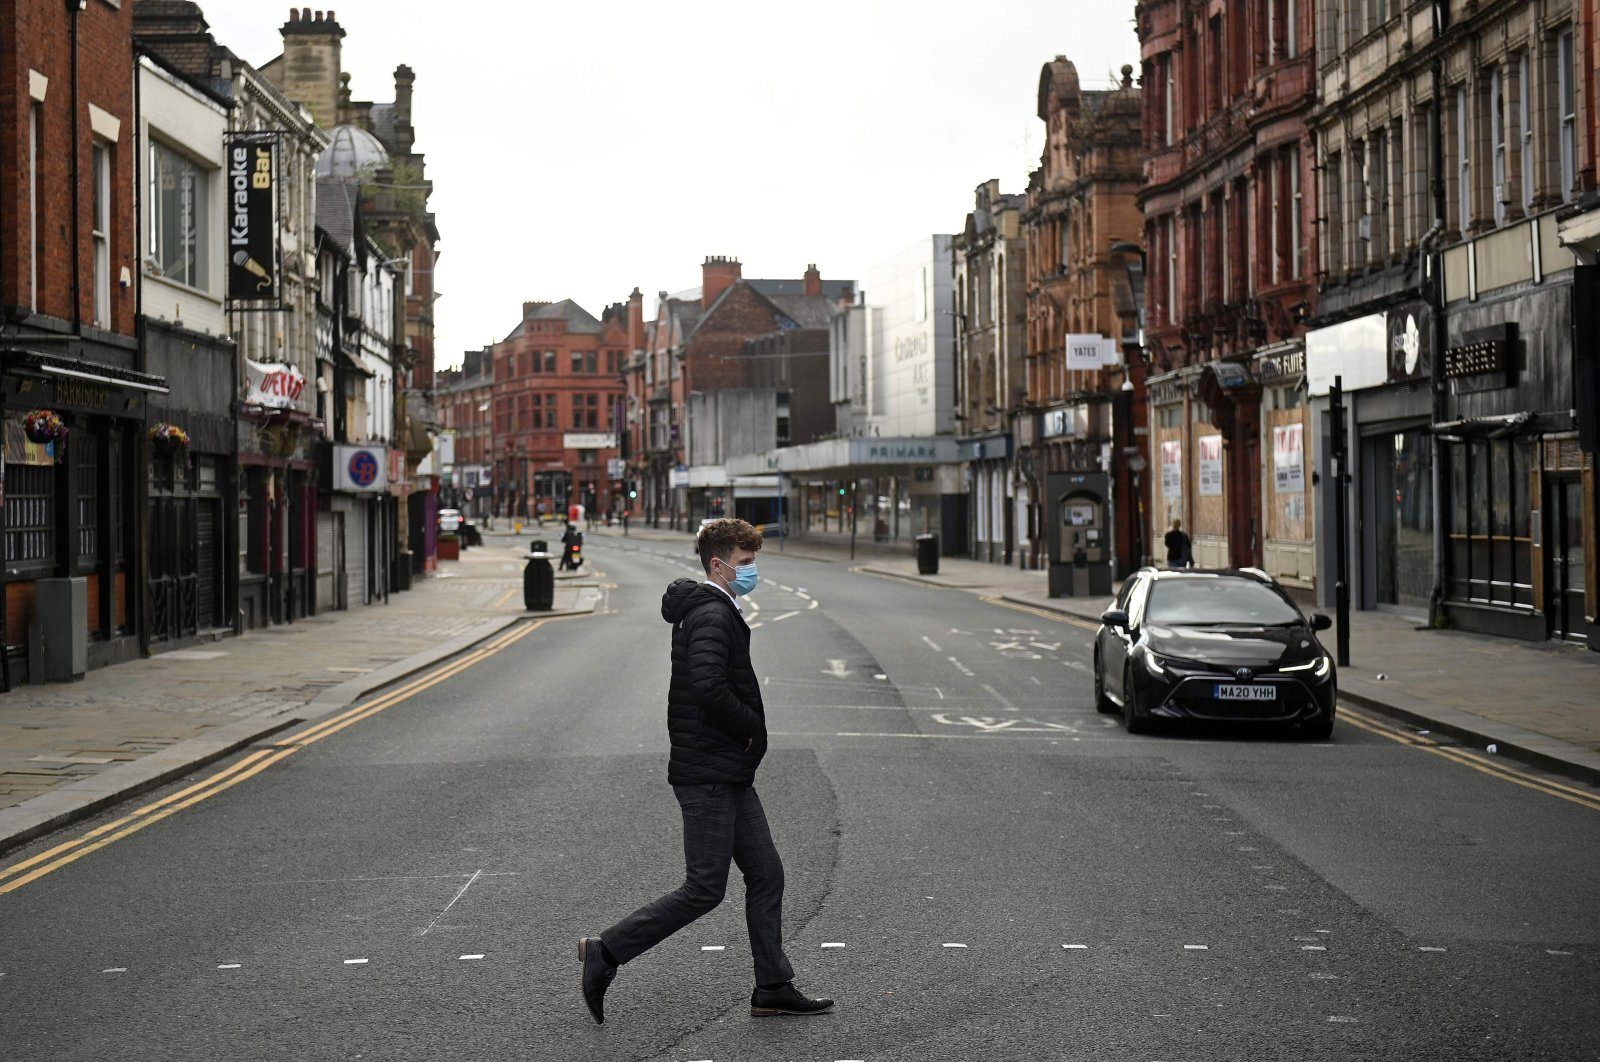 A man wearing a face mask due to the COVID-19 pandemic crosses an almost empty road in the center of Bolton, northern England, Sept. 9, 2020. (AFP Photo)